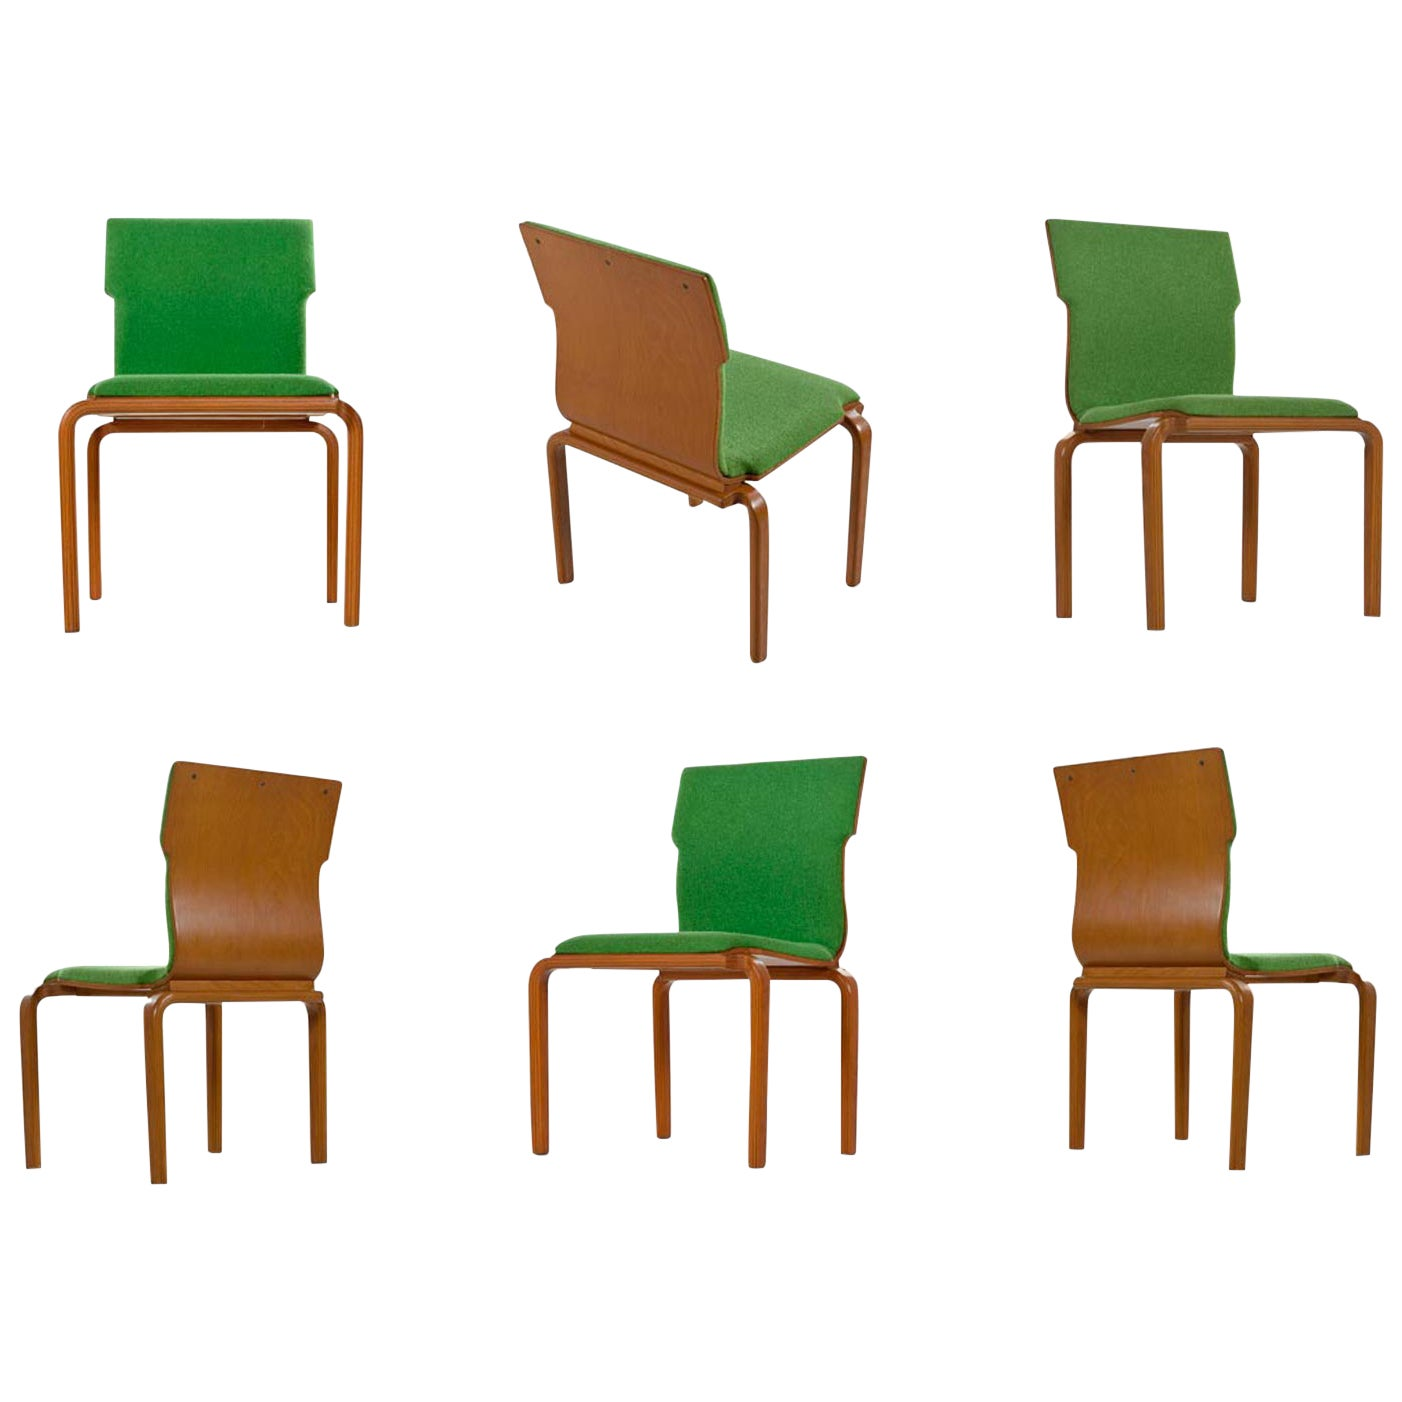 Thonet Style Mid-Century Modern Maple Bent Ply Green Wool Tweed Dining Chair Set